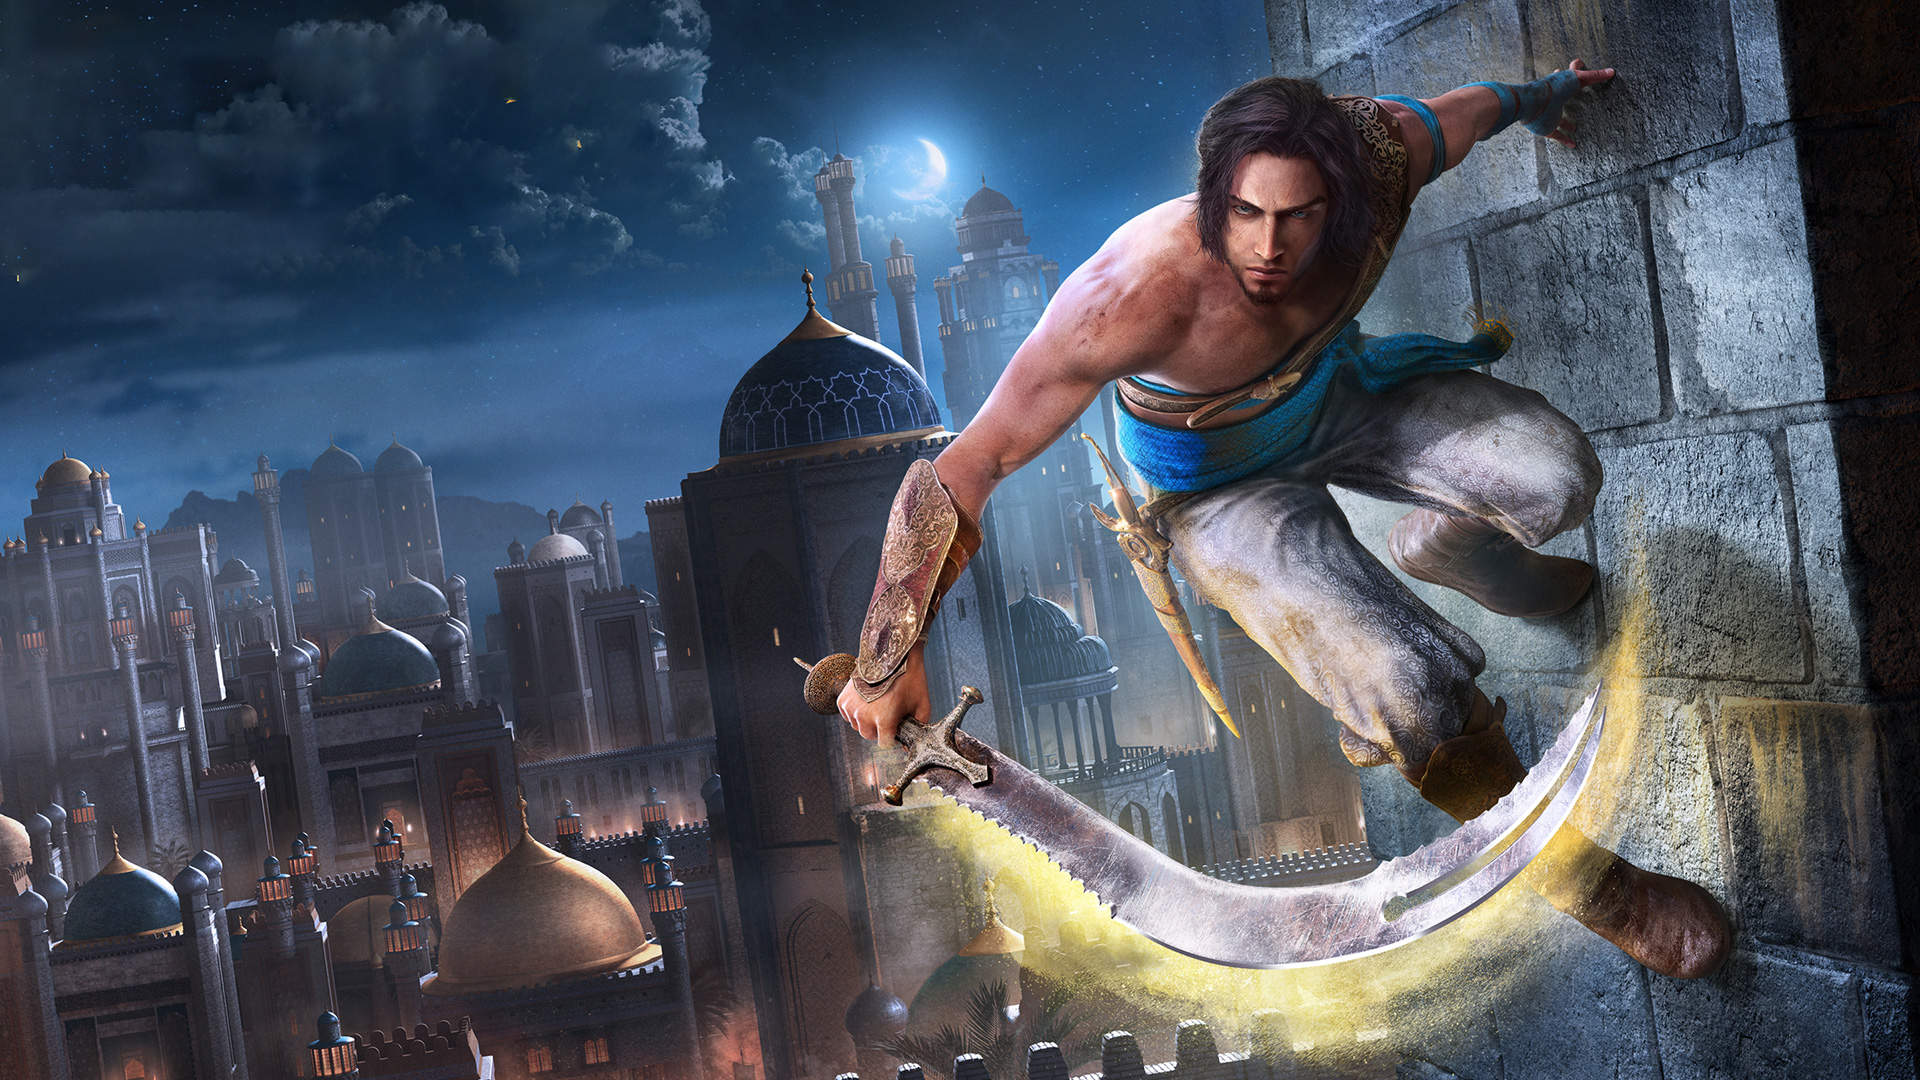 育碧宣布《Prince of Persia:The Sands of Time》重制版再次延期,从 3 月 18 日延期至未定。